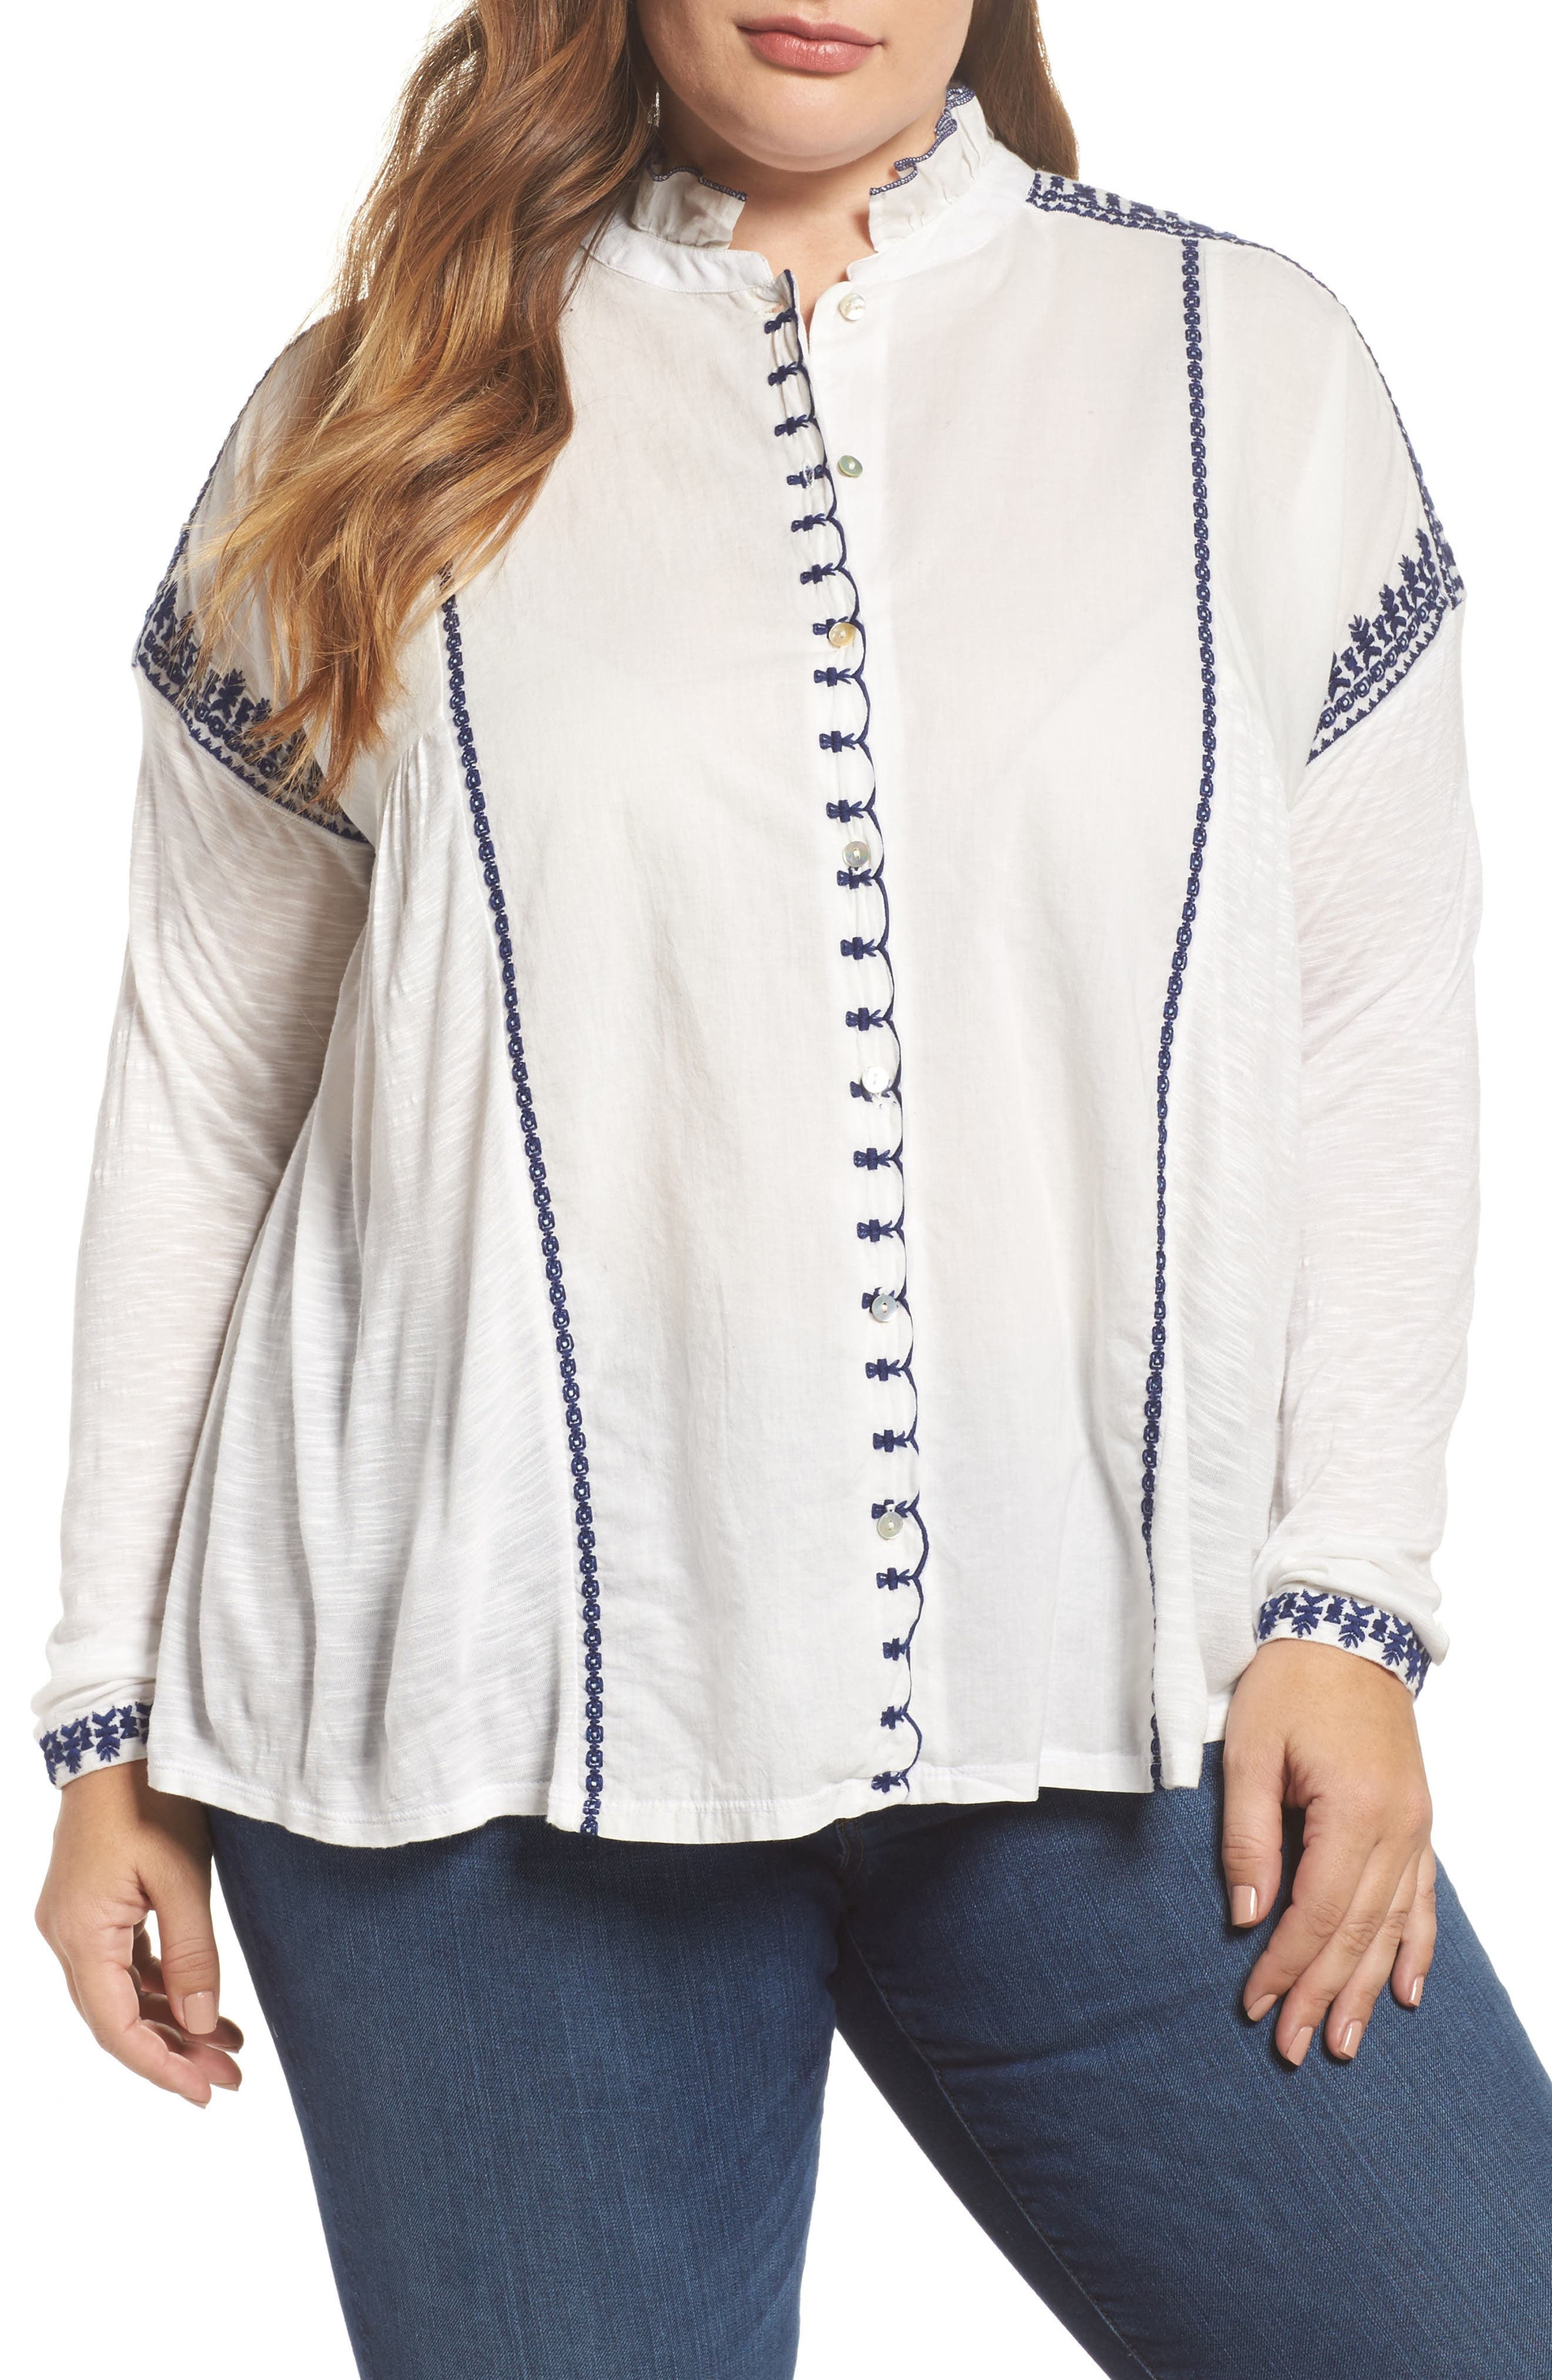 Alternate Image 1 Selected - Lucky Brand Embroidered Mixed Media Top (Plus Size)